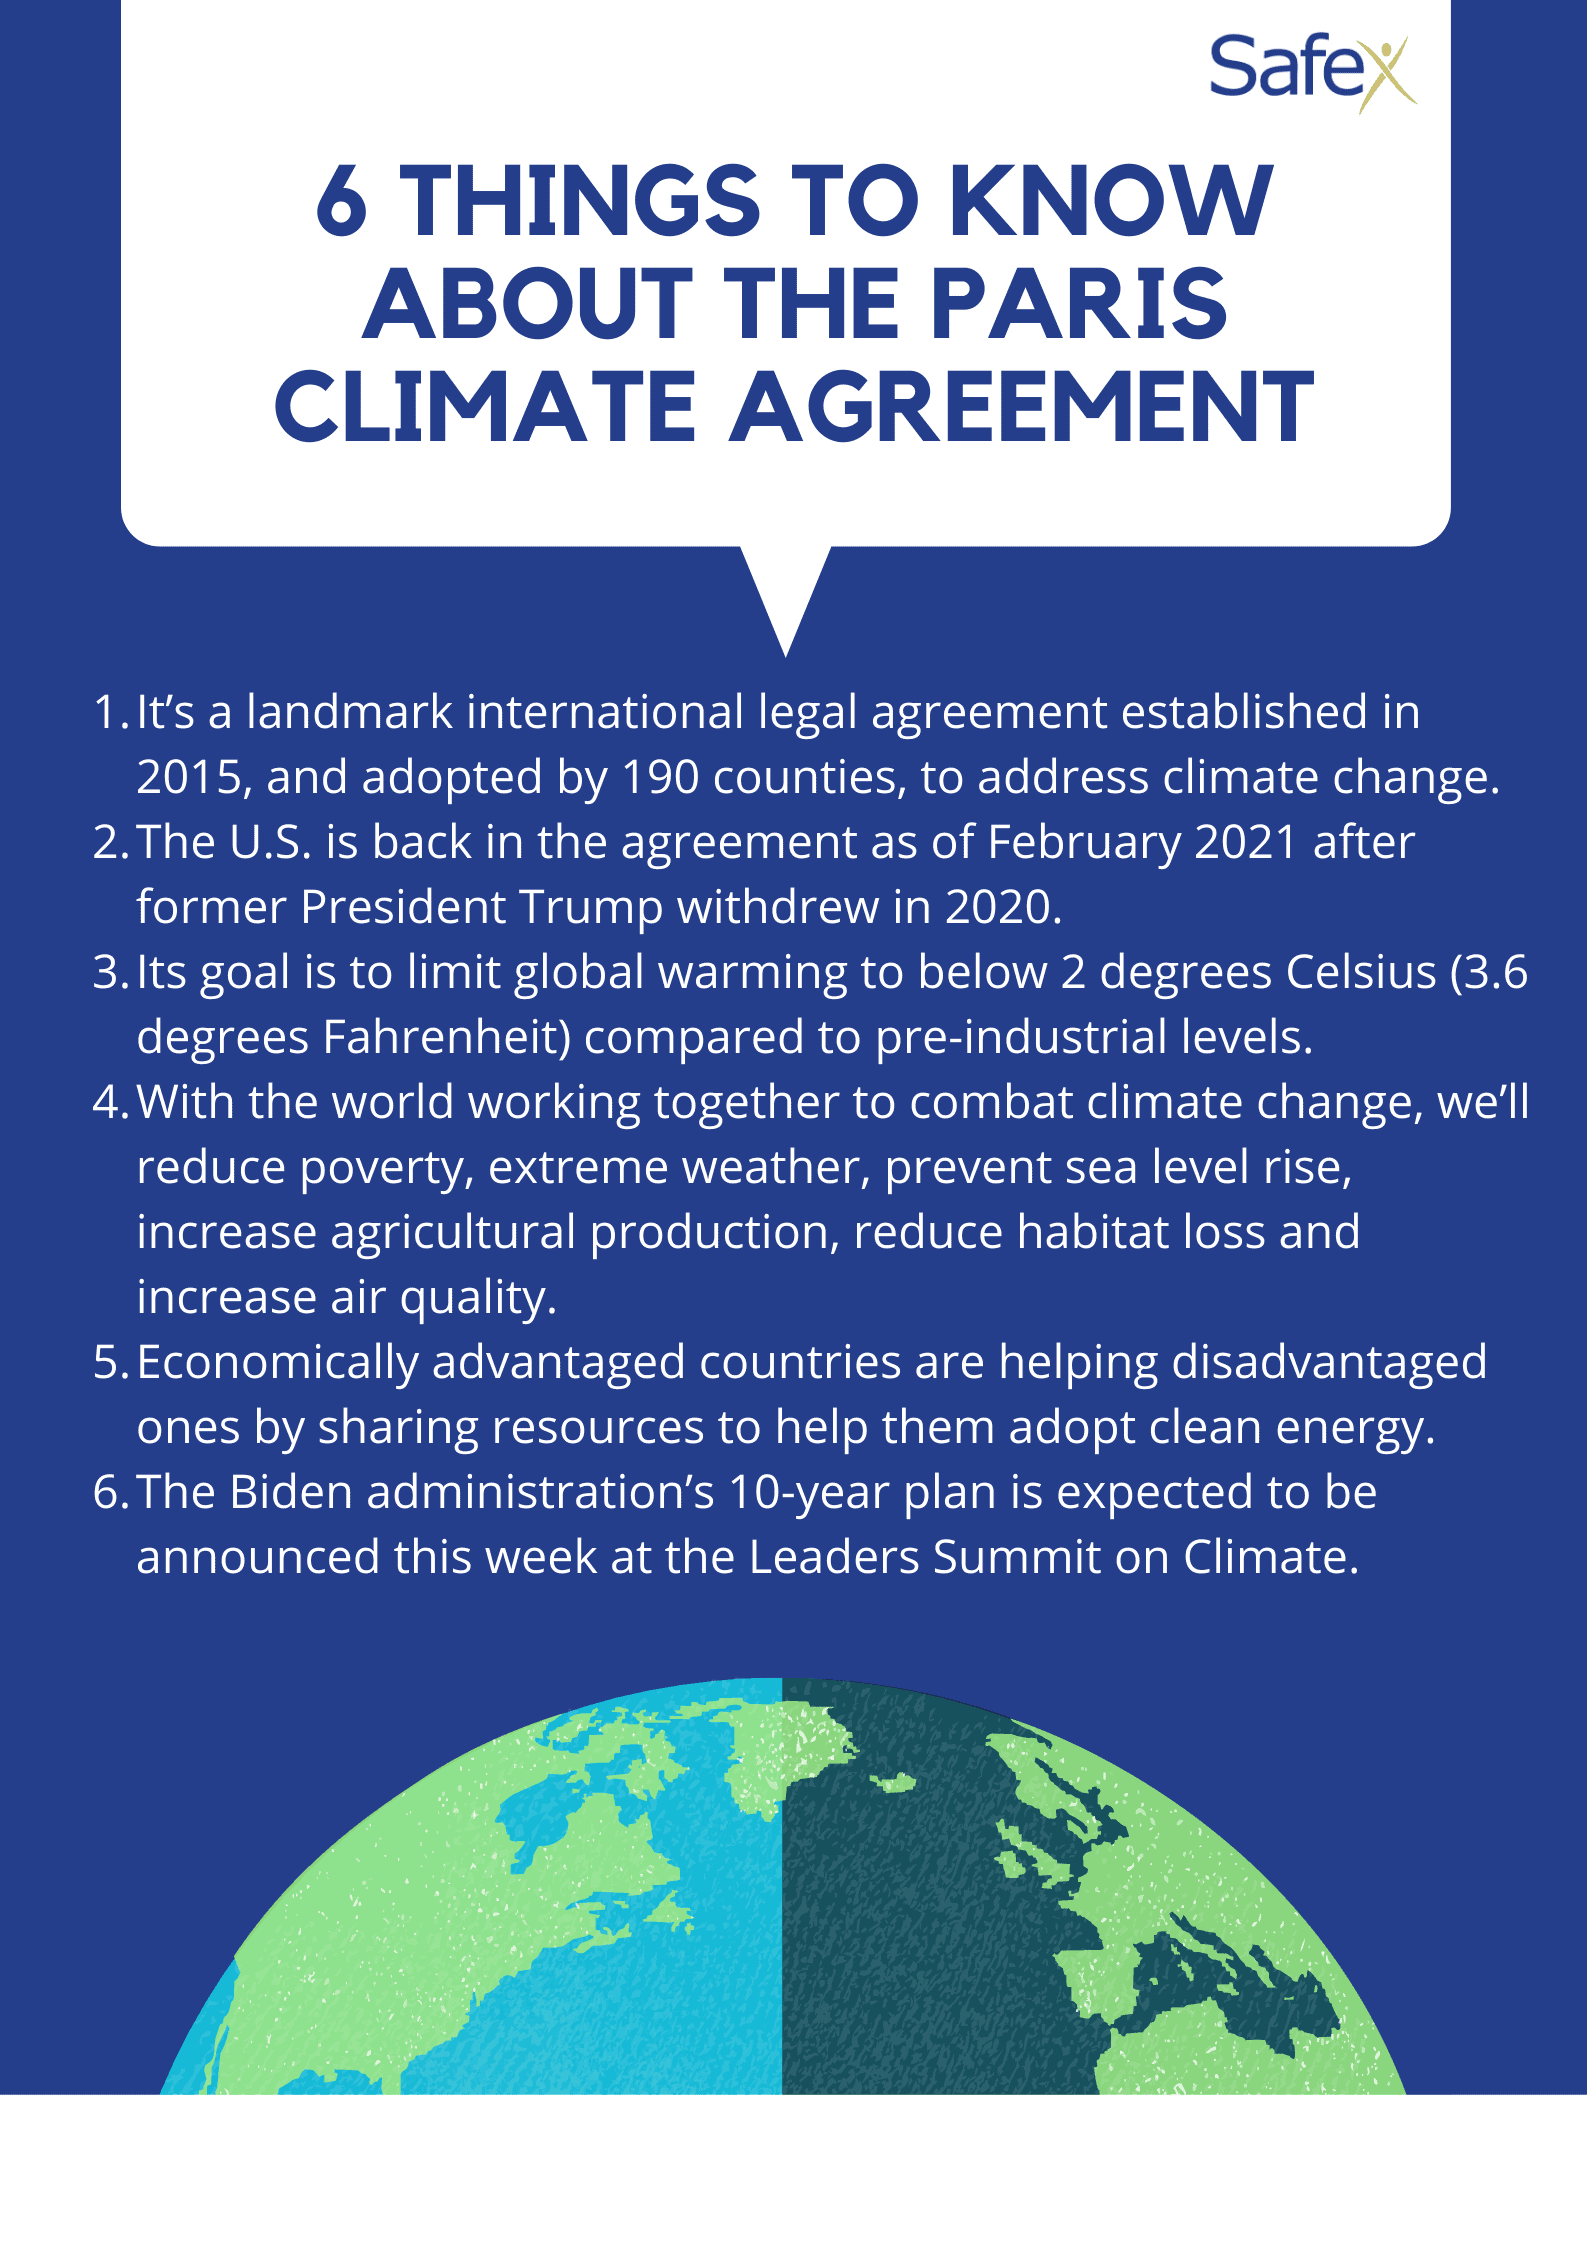 8 things To Know About the Paris Climate Agreement